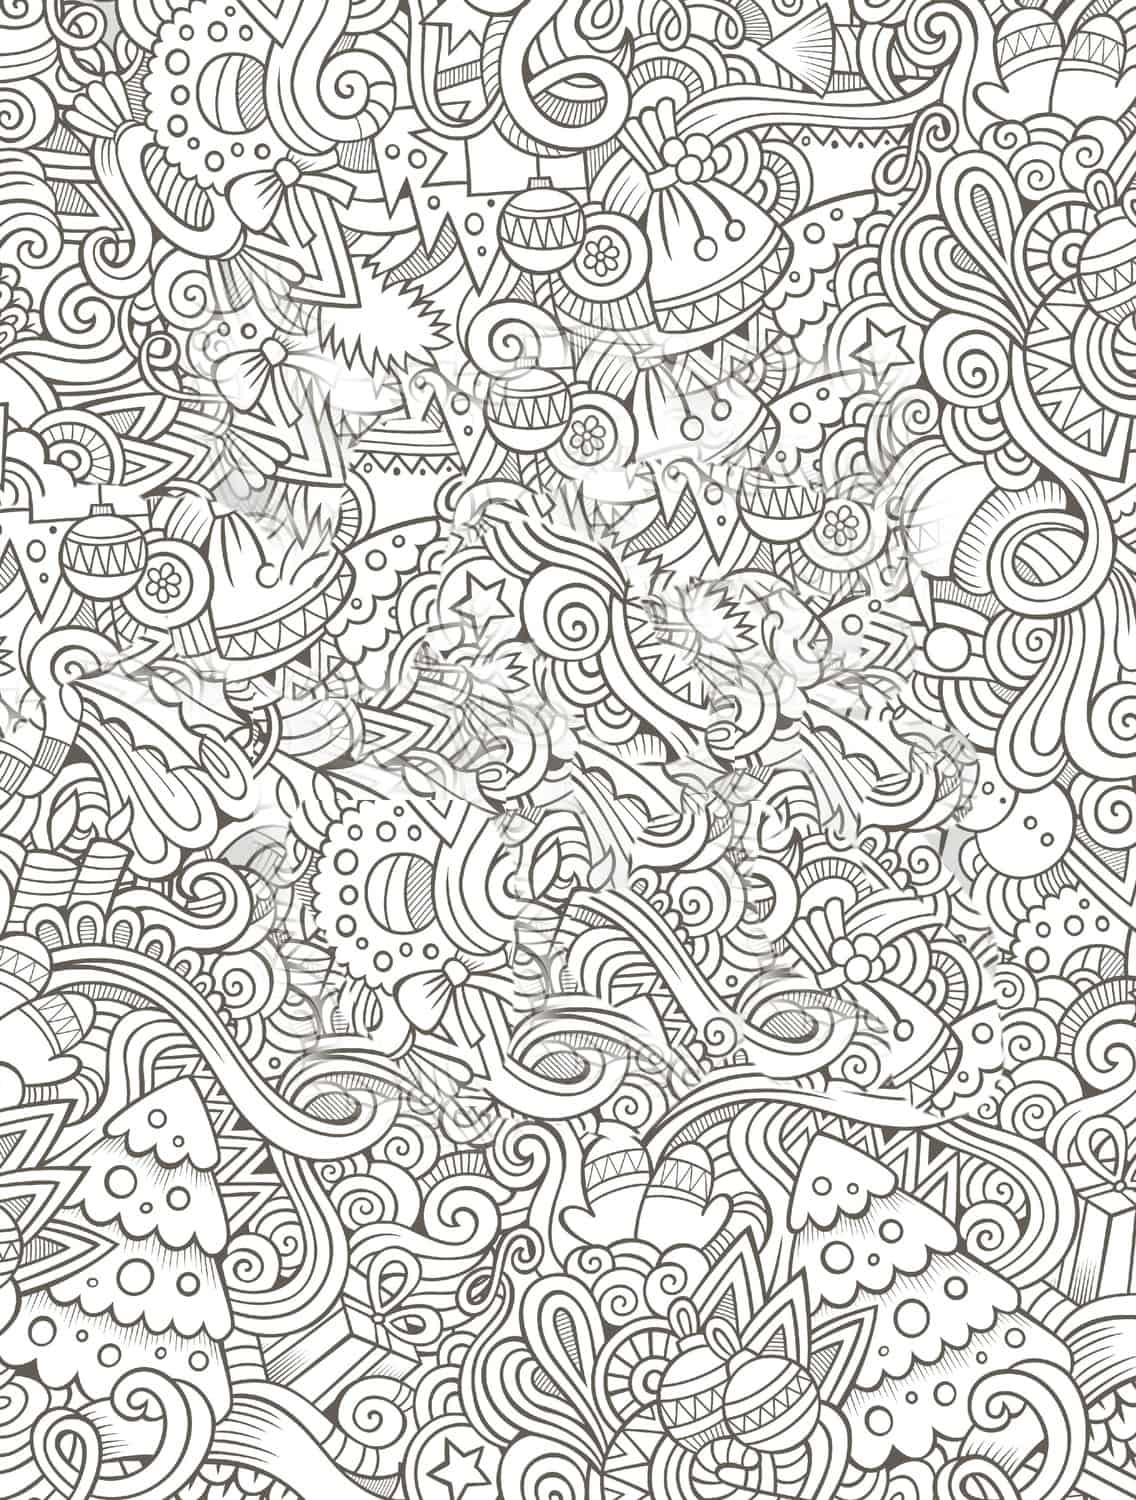 Printable Colouring In Sheets Busy Coloring Page For Free Christmas Gift Small Throughout